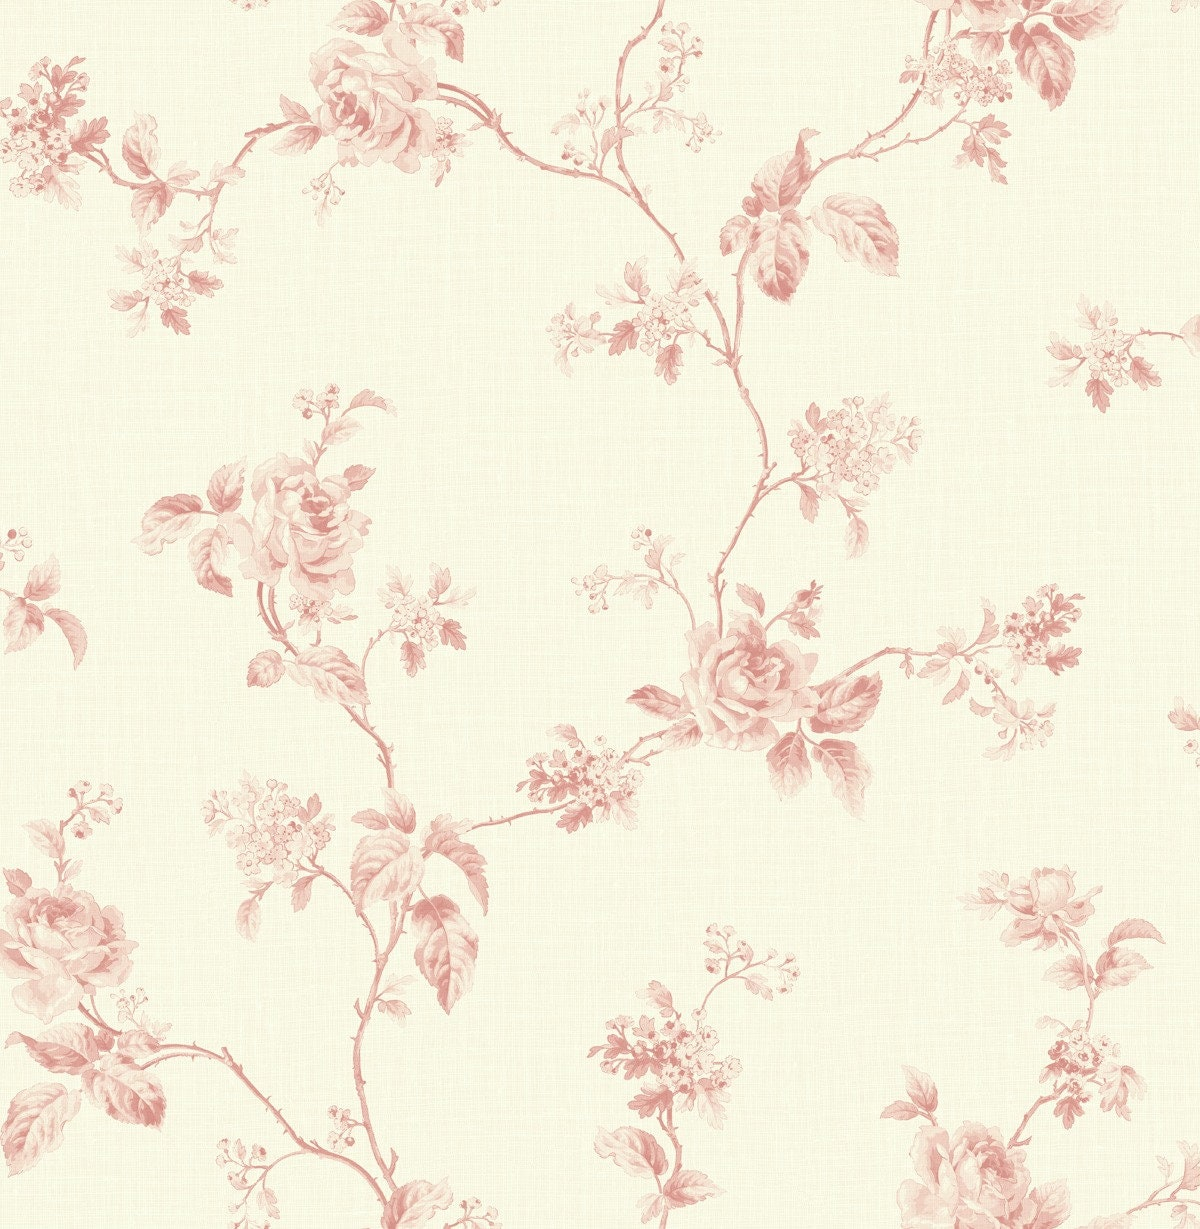 Wallpaper Flower Wallpaper Graphic Wallpaper Modern Etsy